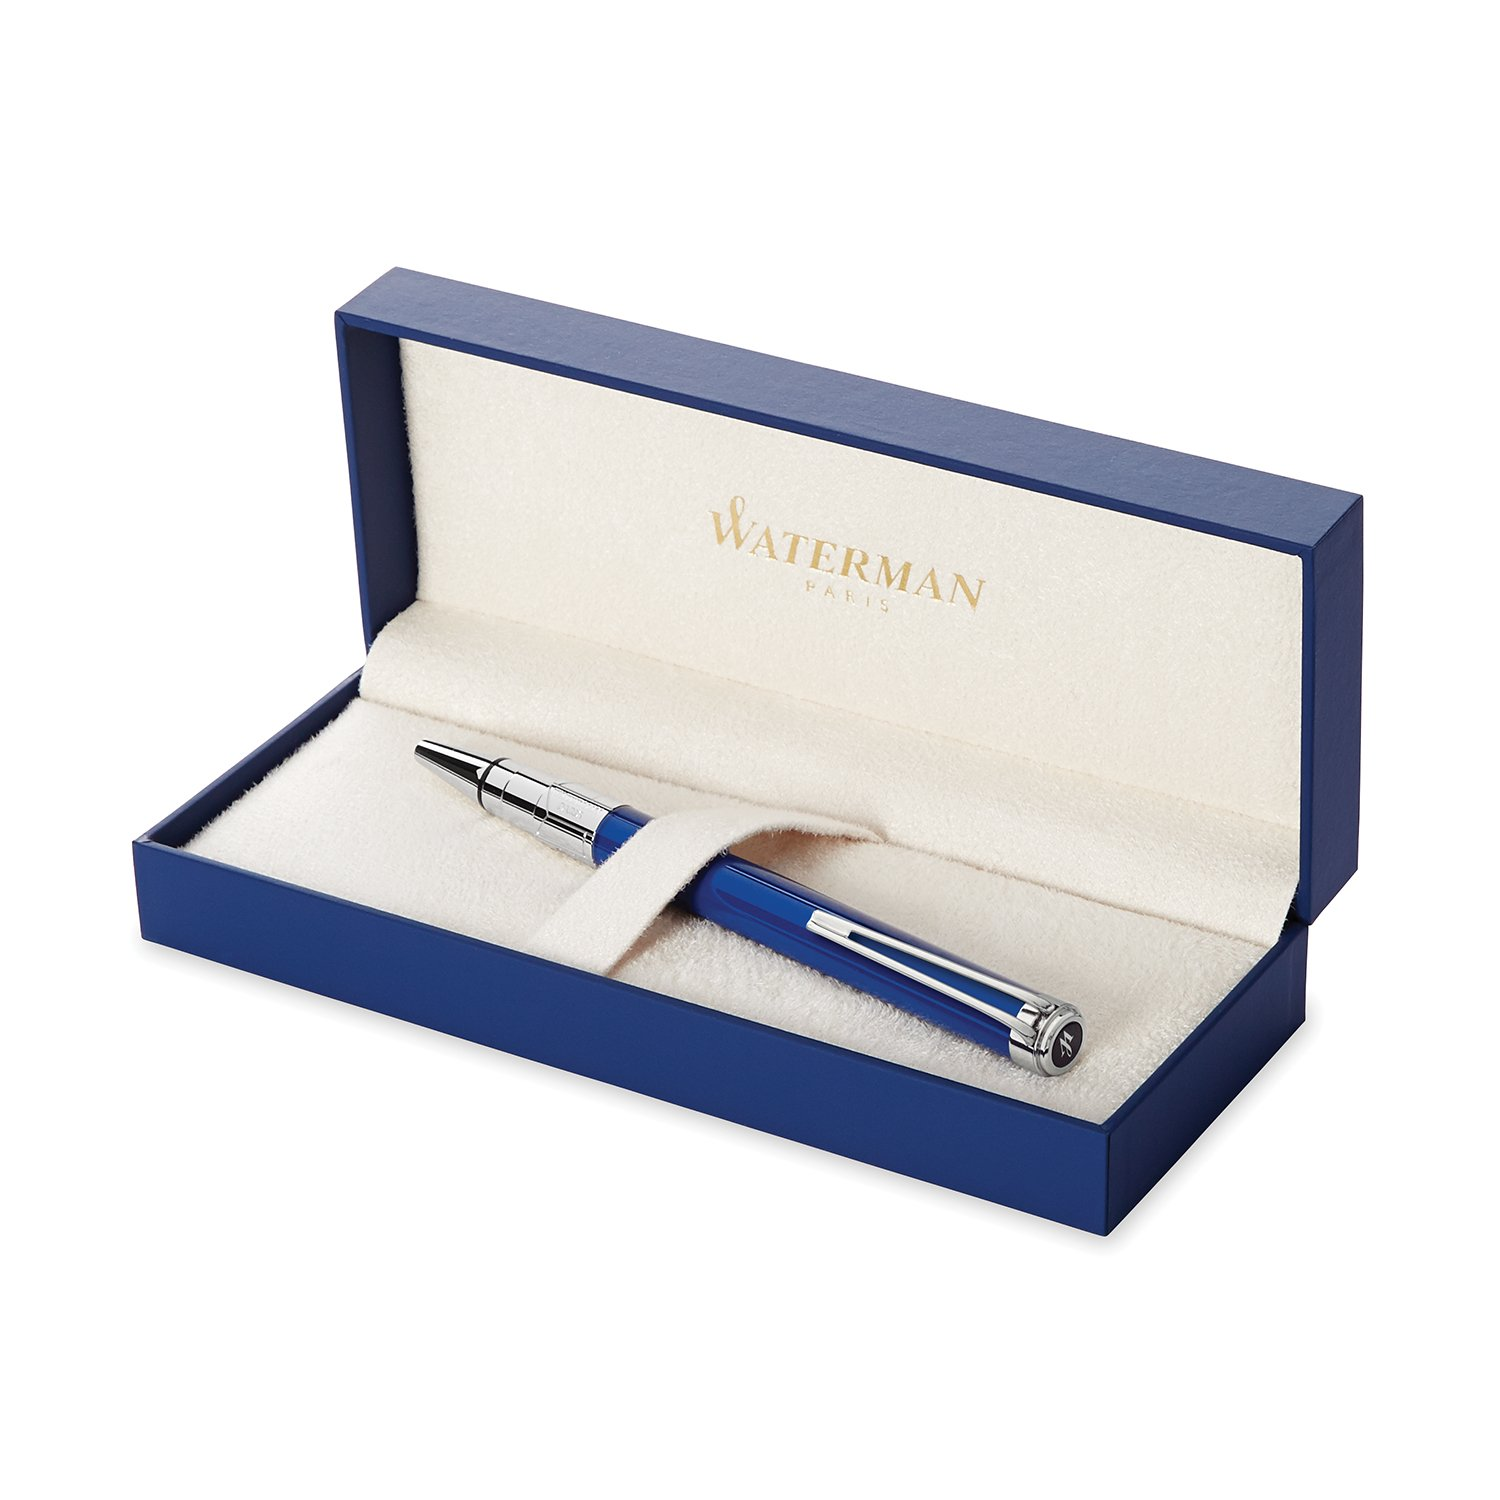 Waterman Perspective Ballpoint Pen, Gloss Blue with Chrome Trim, Medium Point with Blue Ink Cartridge, Gift Box